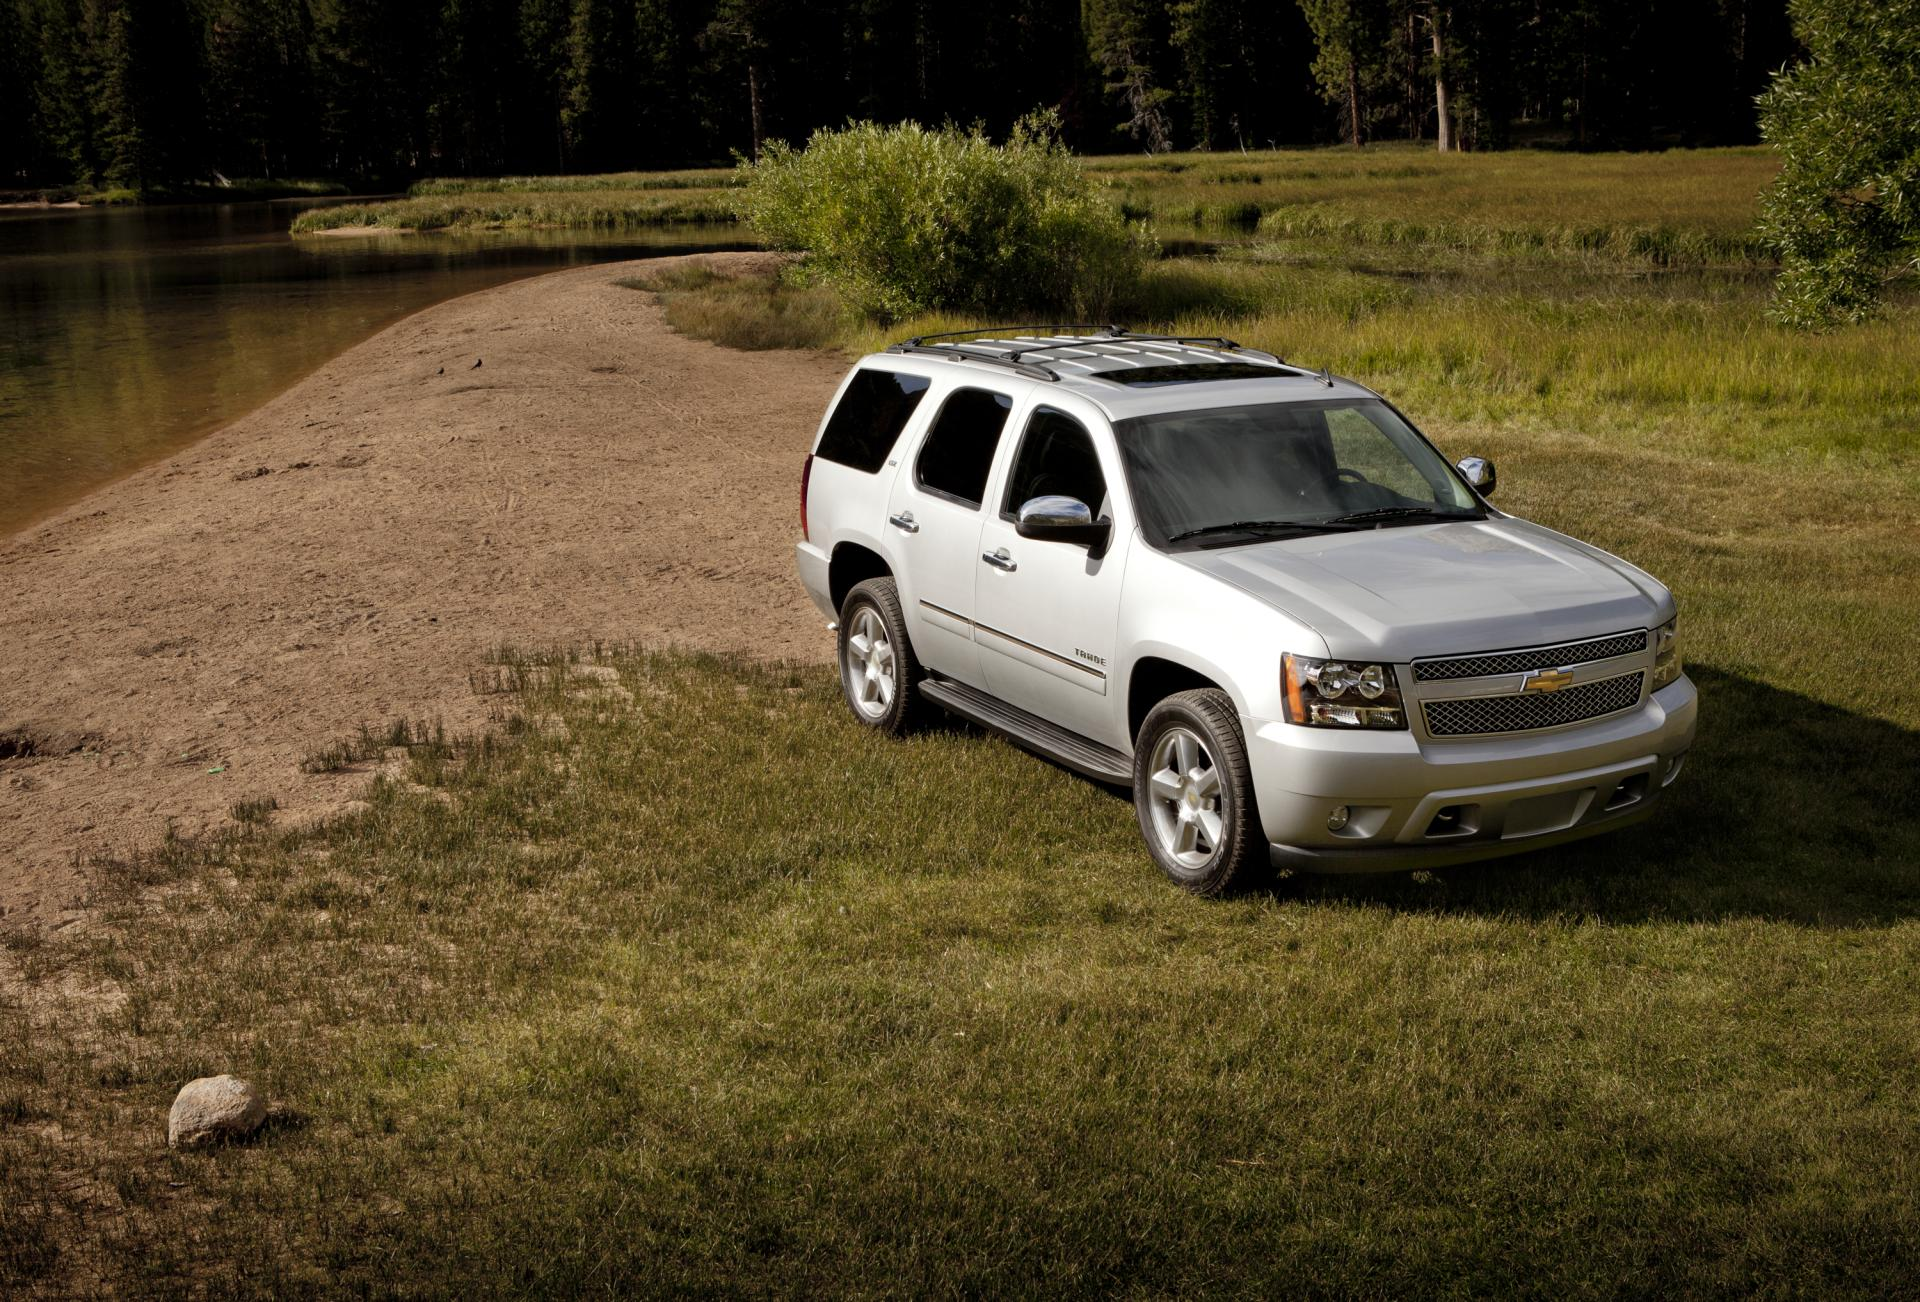 2012 chevrolet tahoe technical specifications and data engine dimensions and mechanical. Black Bedroom Furniture Sets. Home Design Ideas